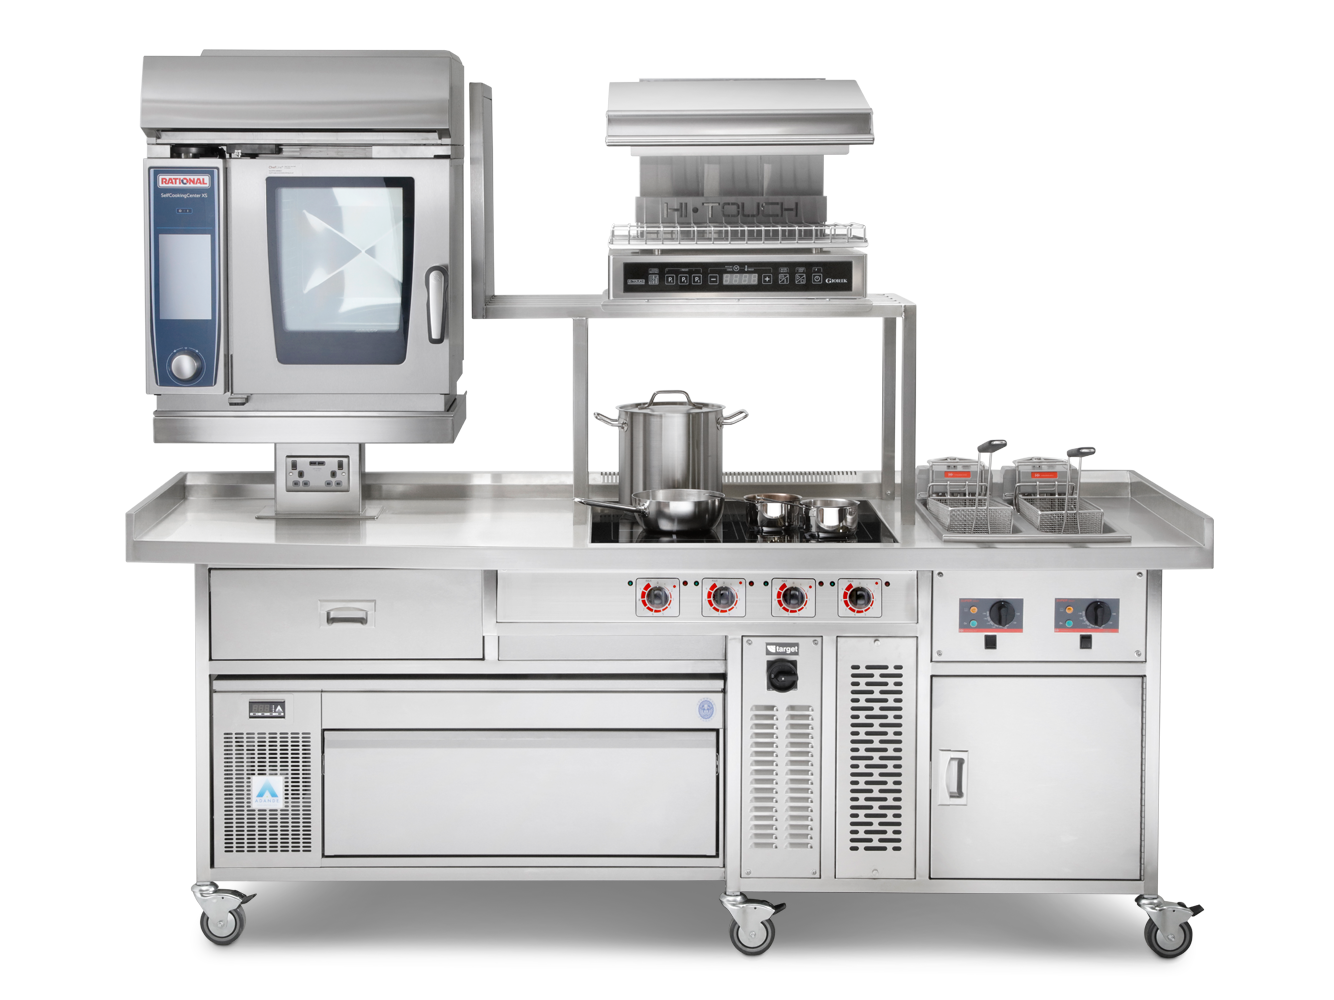 commercial-induction-range-with-hobs-fryer-combination-oven-refrigerated-drawer.png